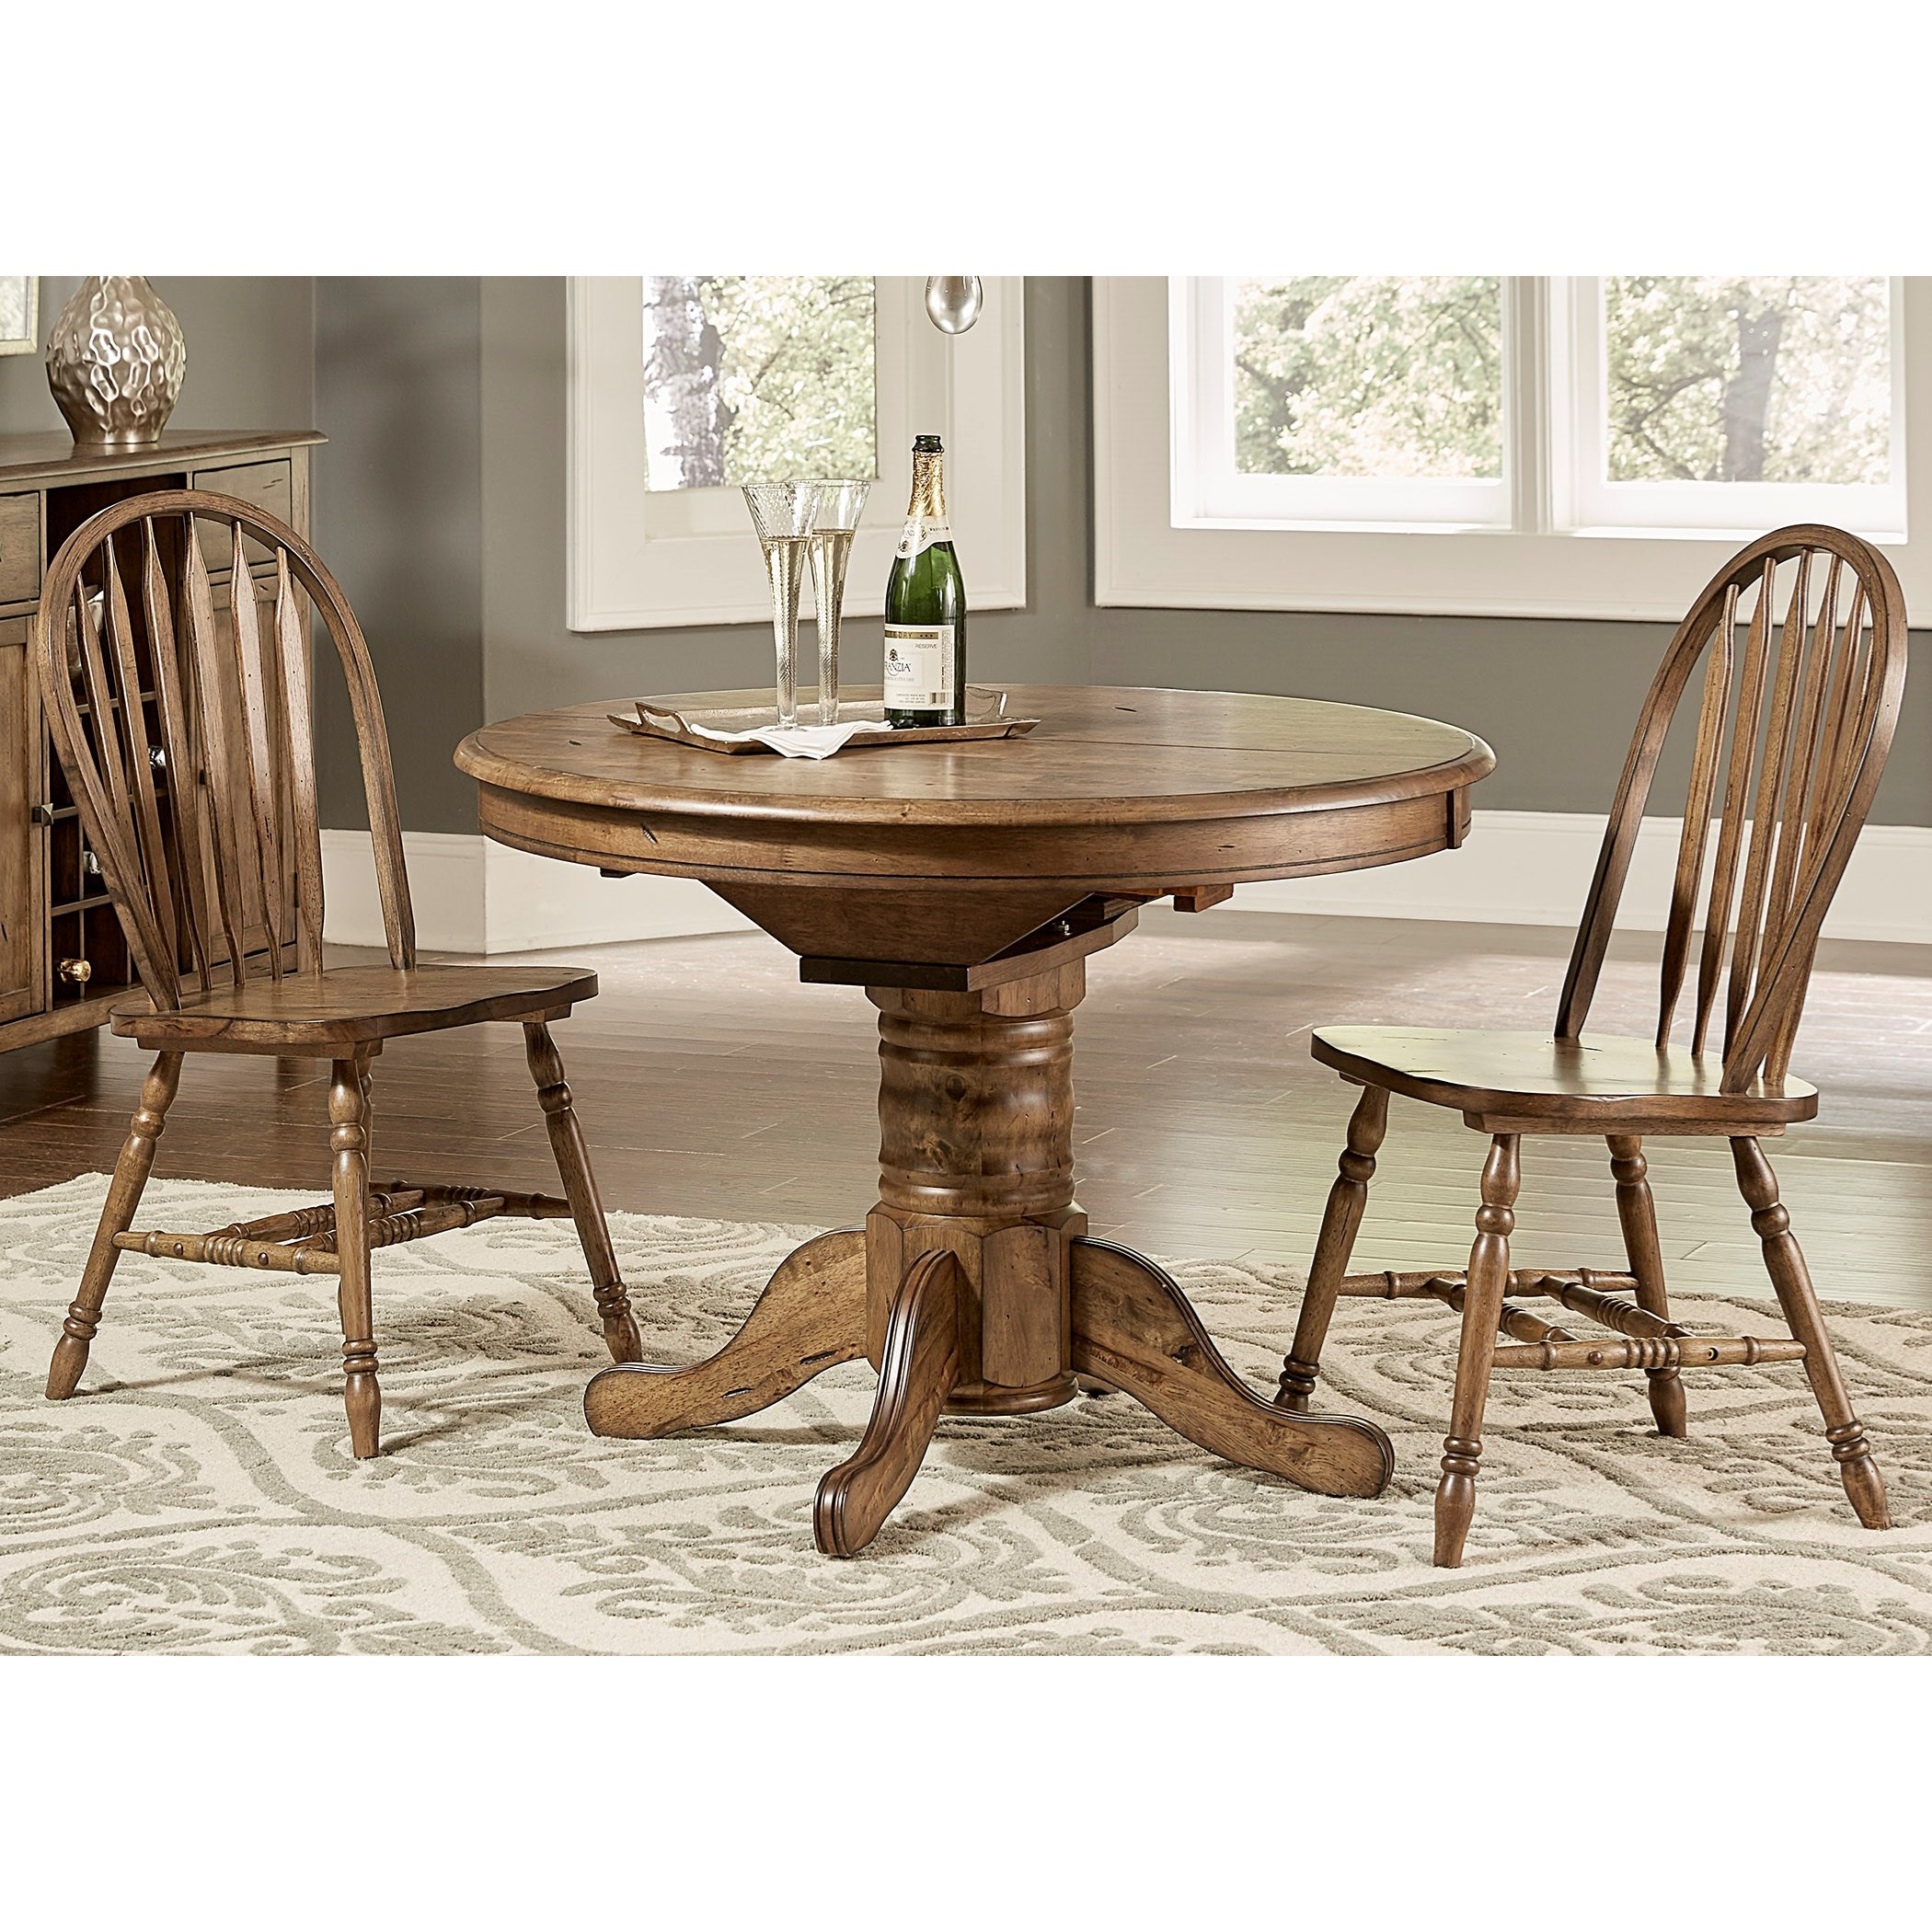 Carolina Crossing Pedestal Table and Chair Set by Liberty Furniture at Lapeer Furniture & Mattress Center